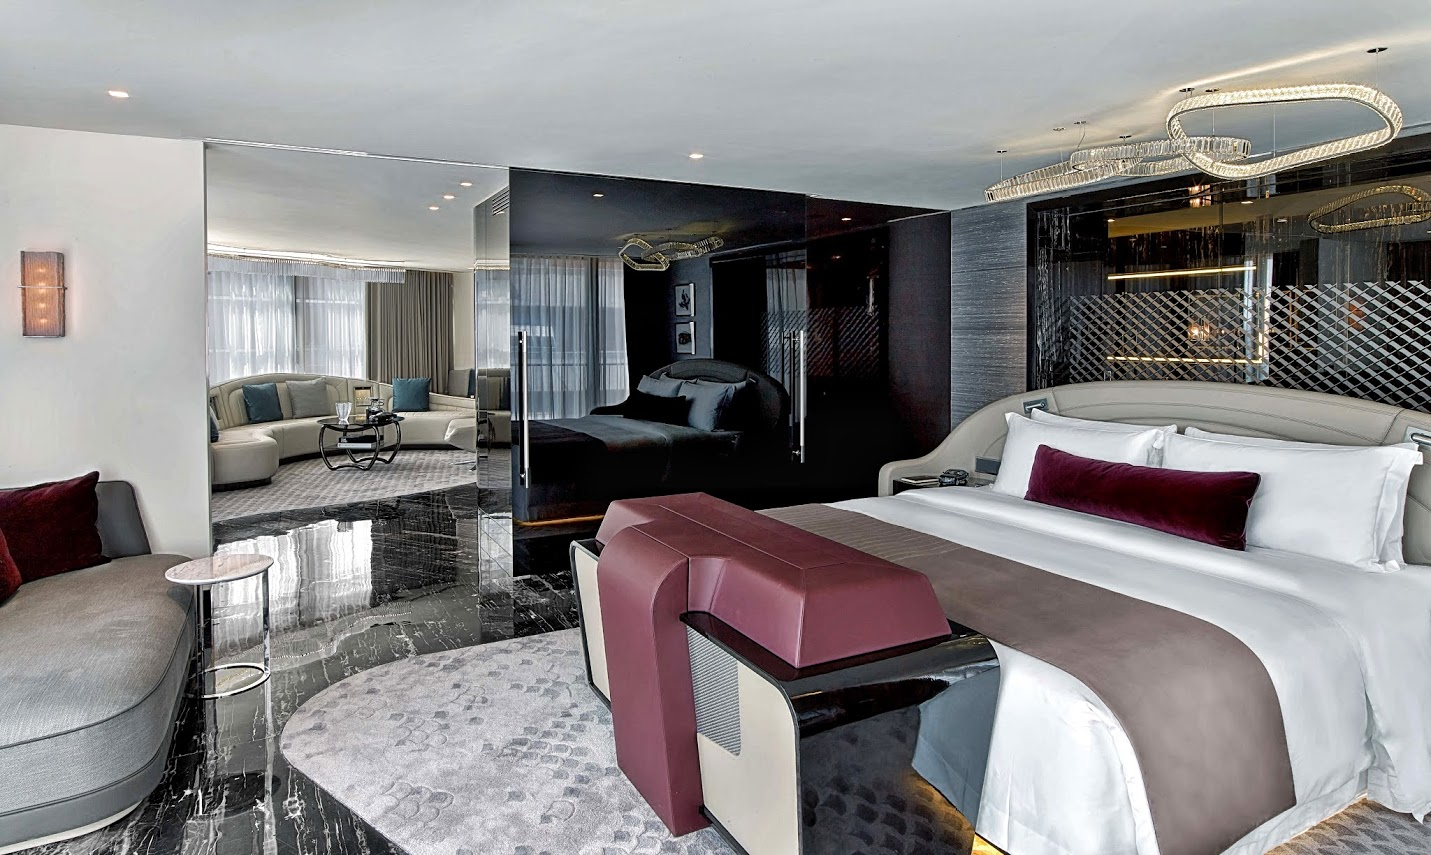 New Bentley suite debuts at the St. Regis Istanbul 2